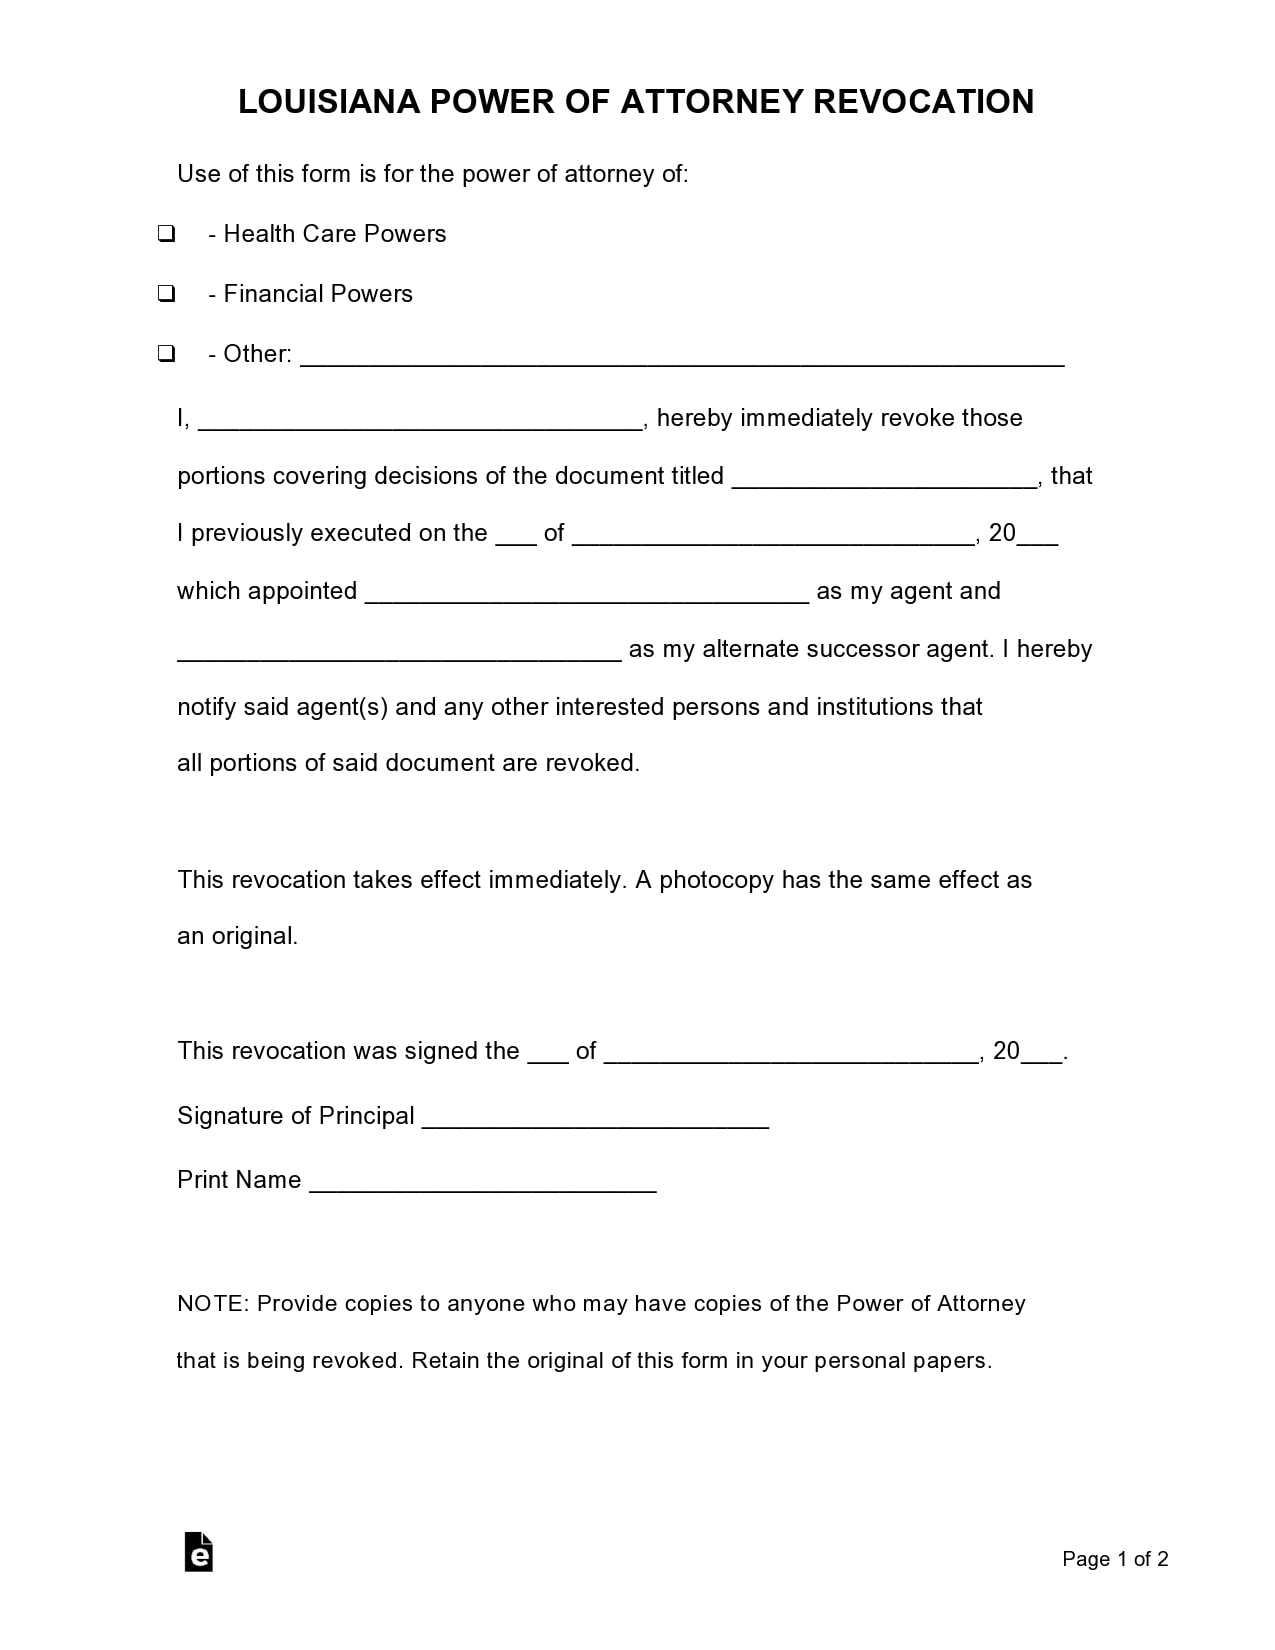 power of attorney revocation form 26